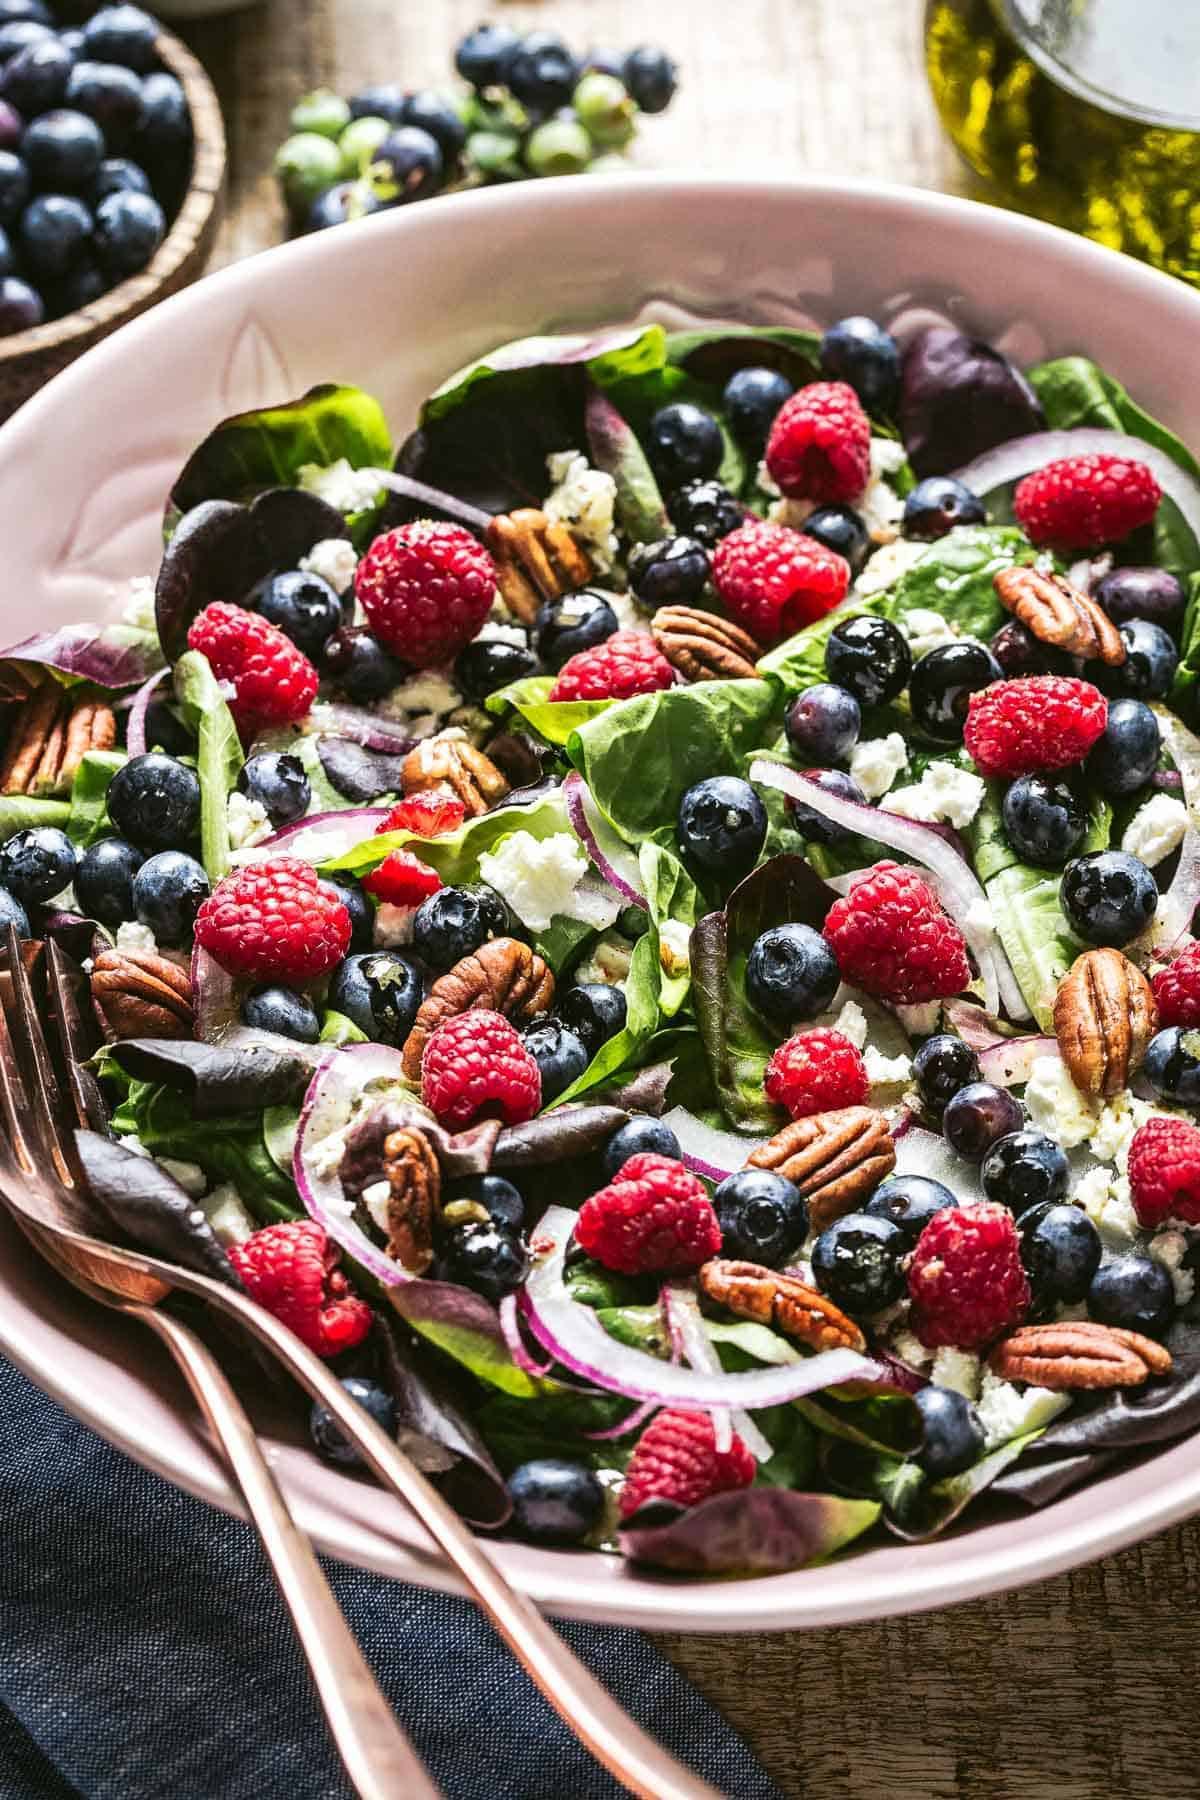 Spinach salad with blueberries and feta with spoons on the side